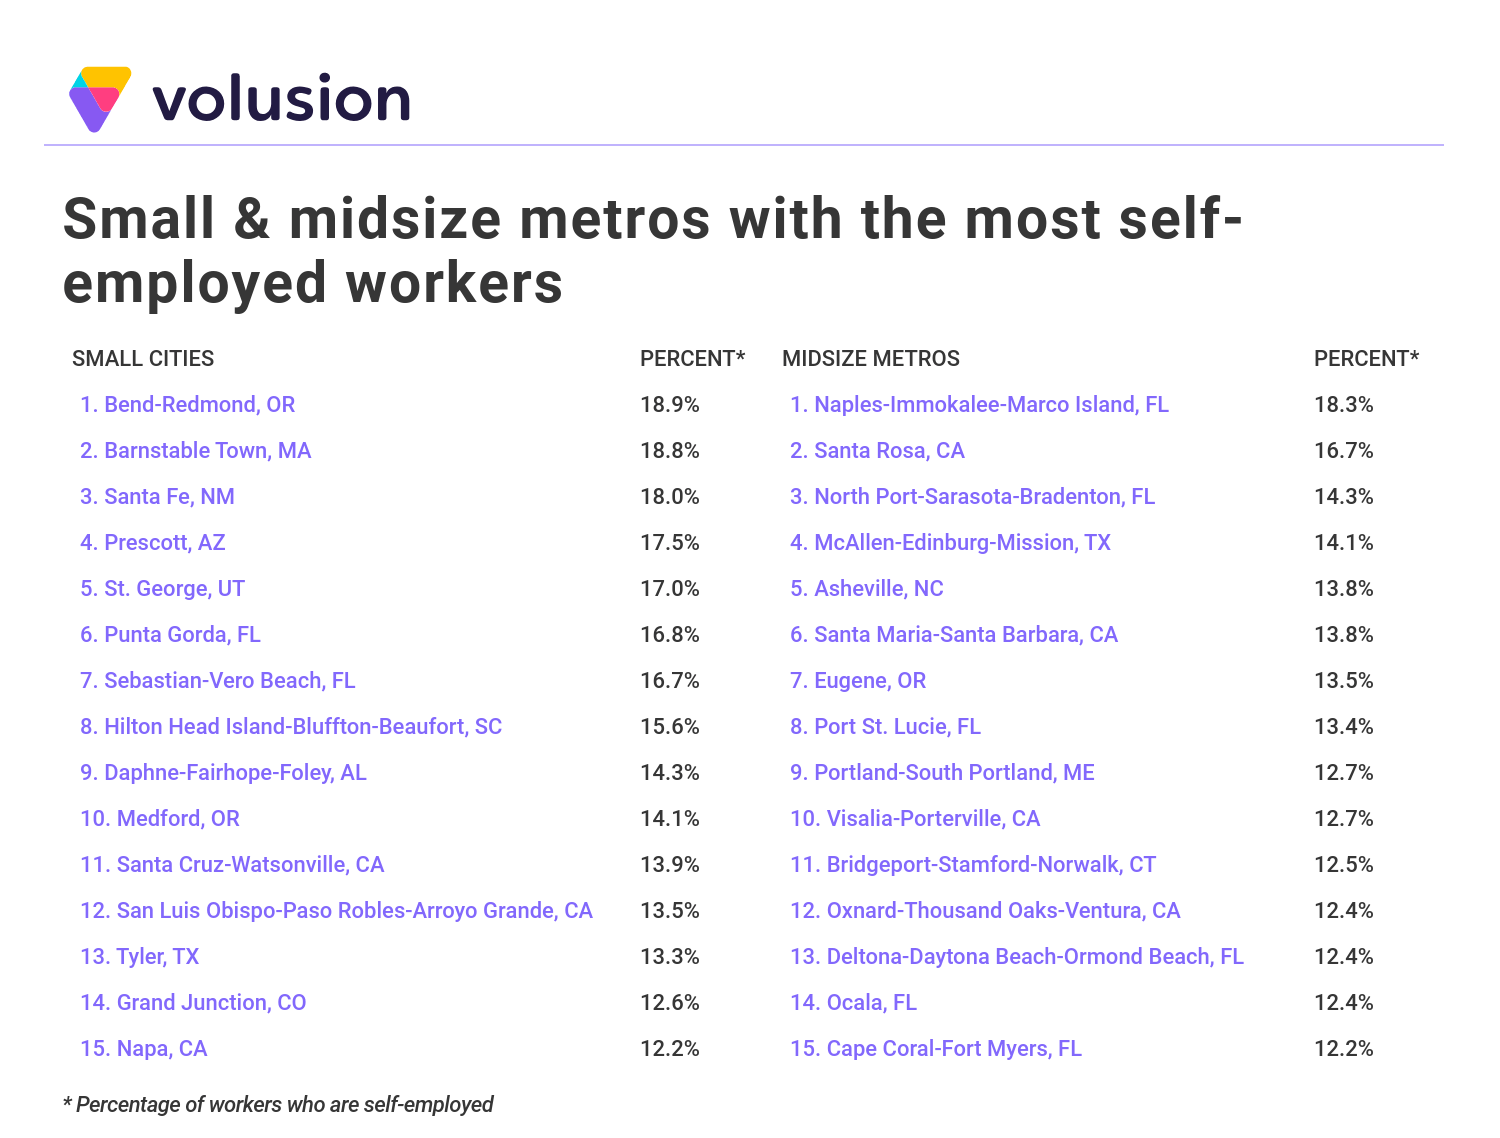 Lists of small and midsize metros with the most self-employed workers.